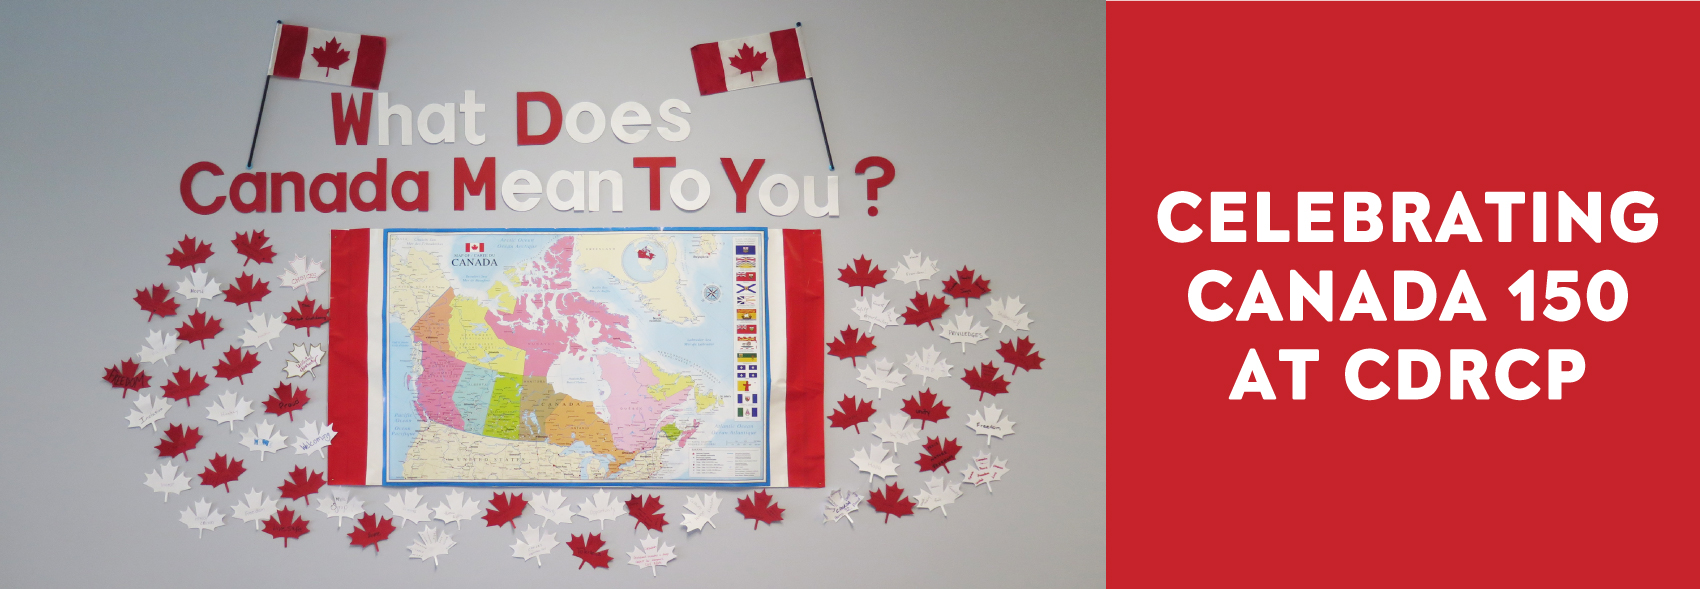 What Does Canada Mean to You?